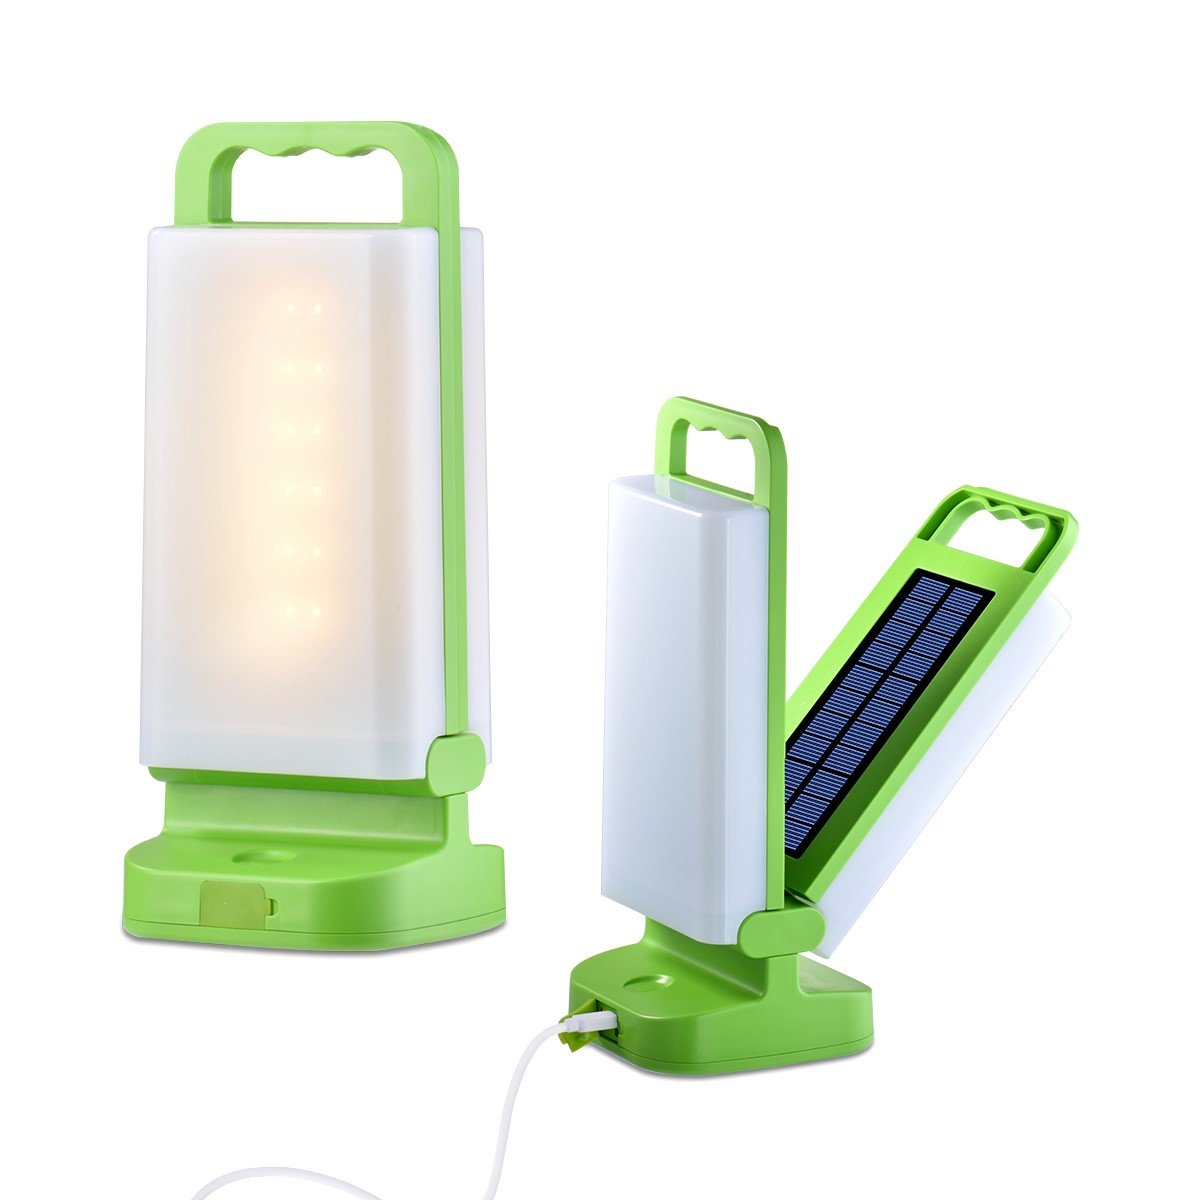 Amforo Portable LED Solar Lights Collapsible Solar Camping Lantern 3 Lighting Modes with 24 LEDs Foldable Rechargeable Solar Panel and USB Charging for Camping Emergencies Hiking Tent Garden Party